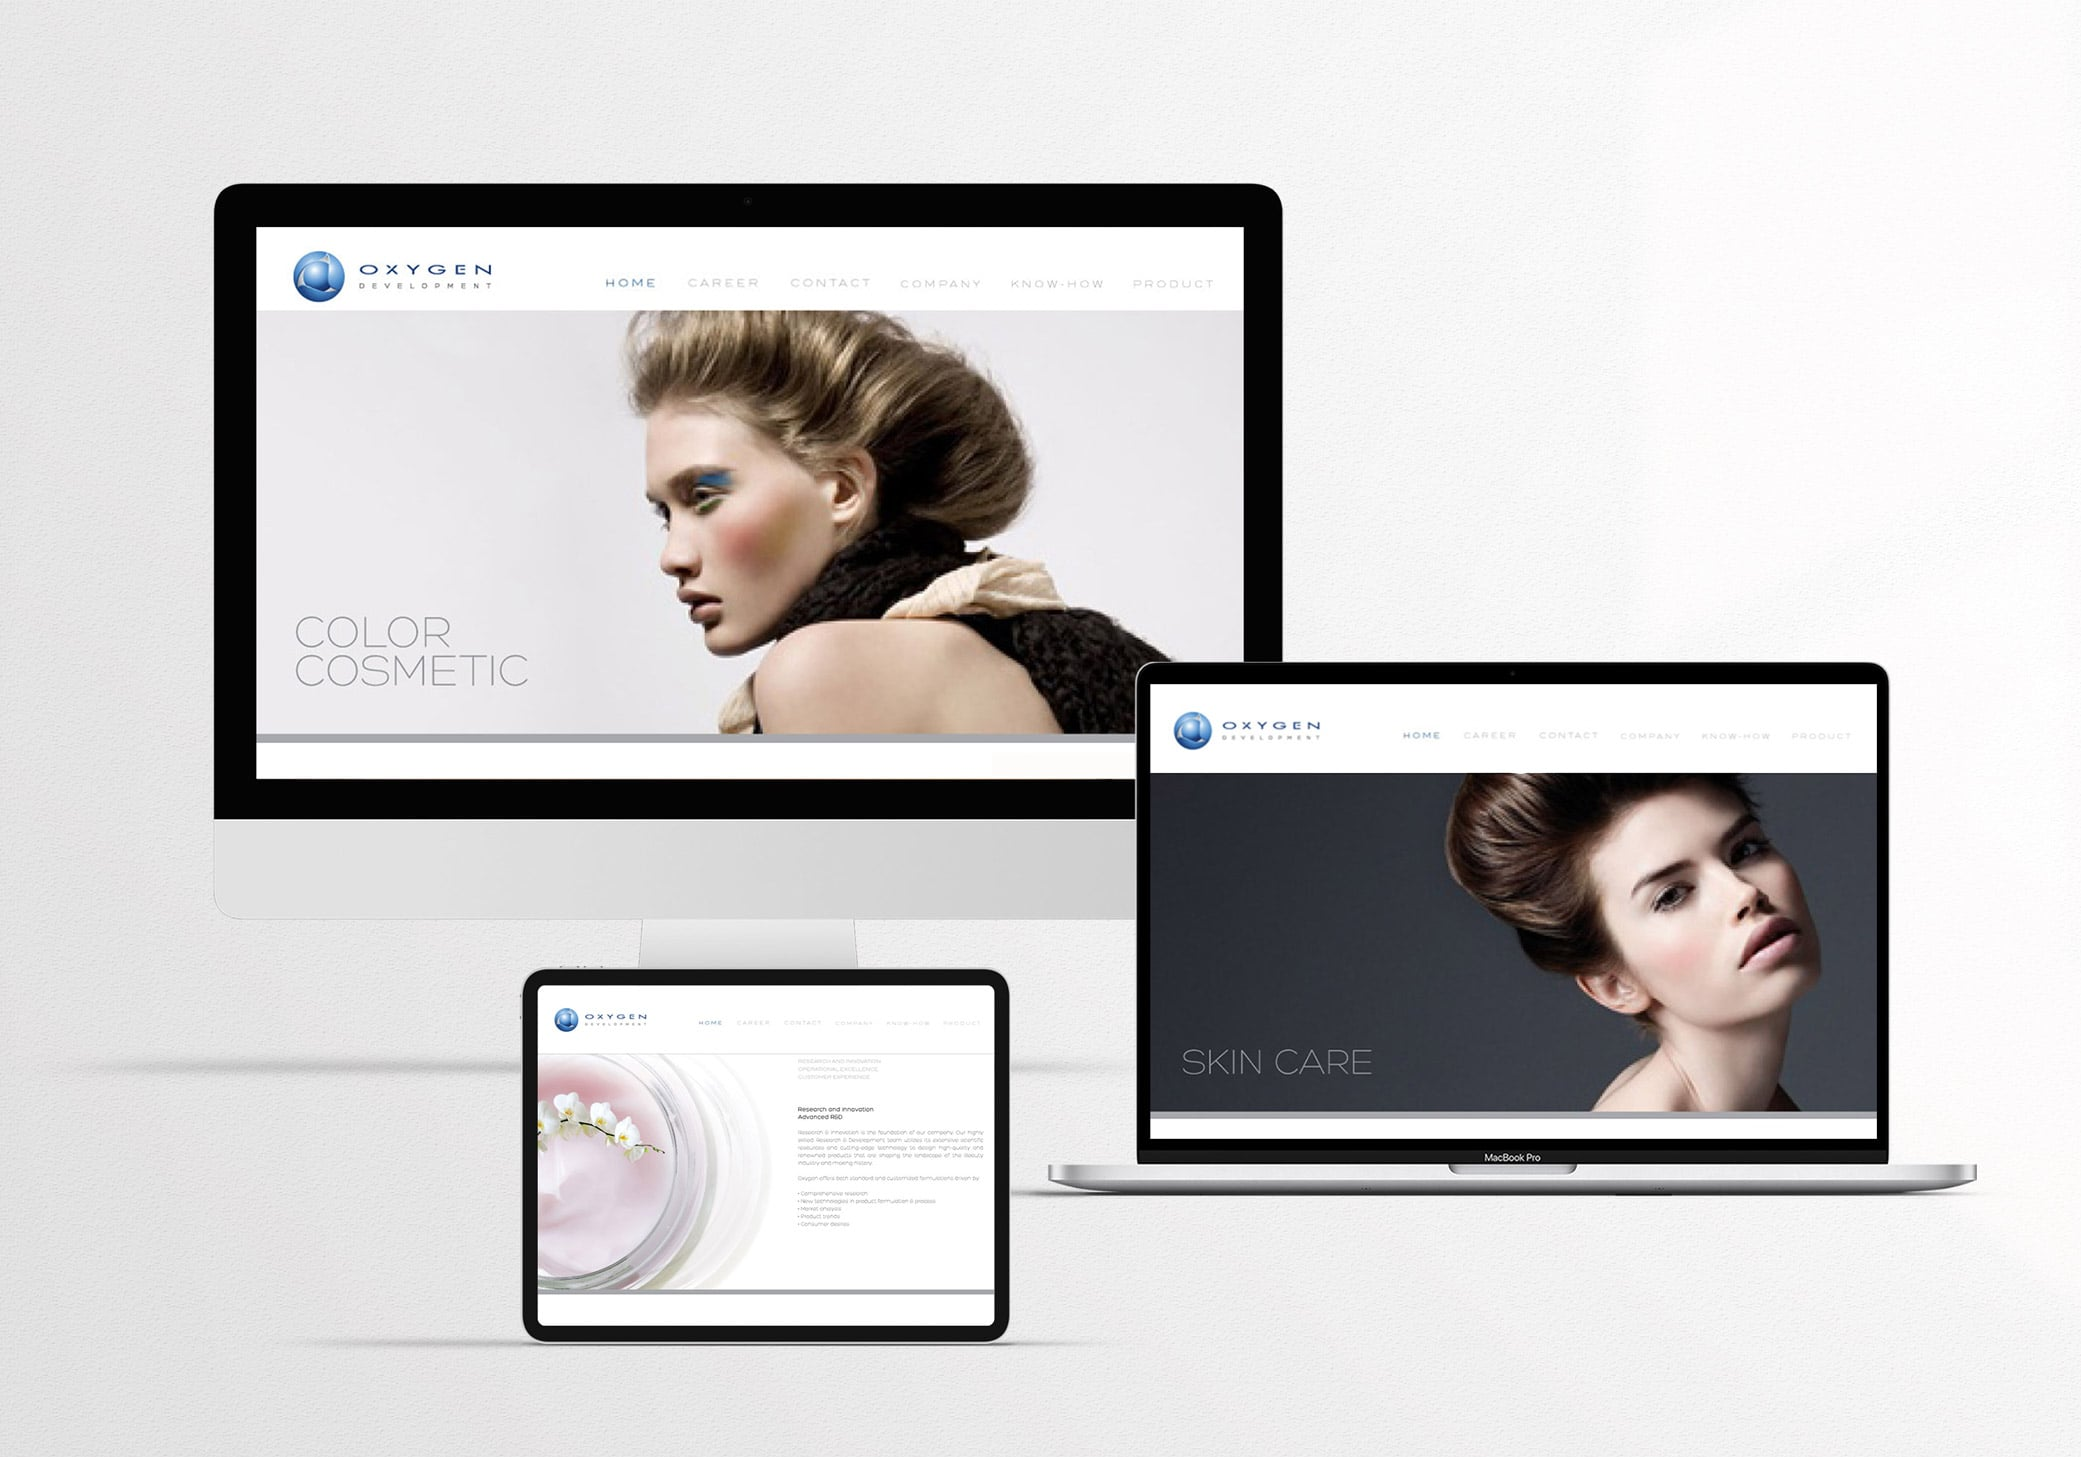 Oxygen premium website design in clean white and neutral tones showing couture makeup products and flawless skincare models.